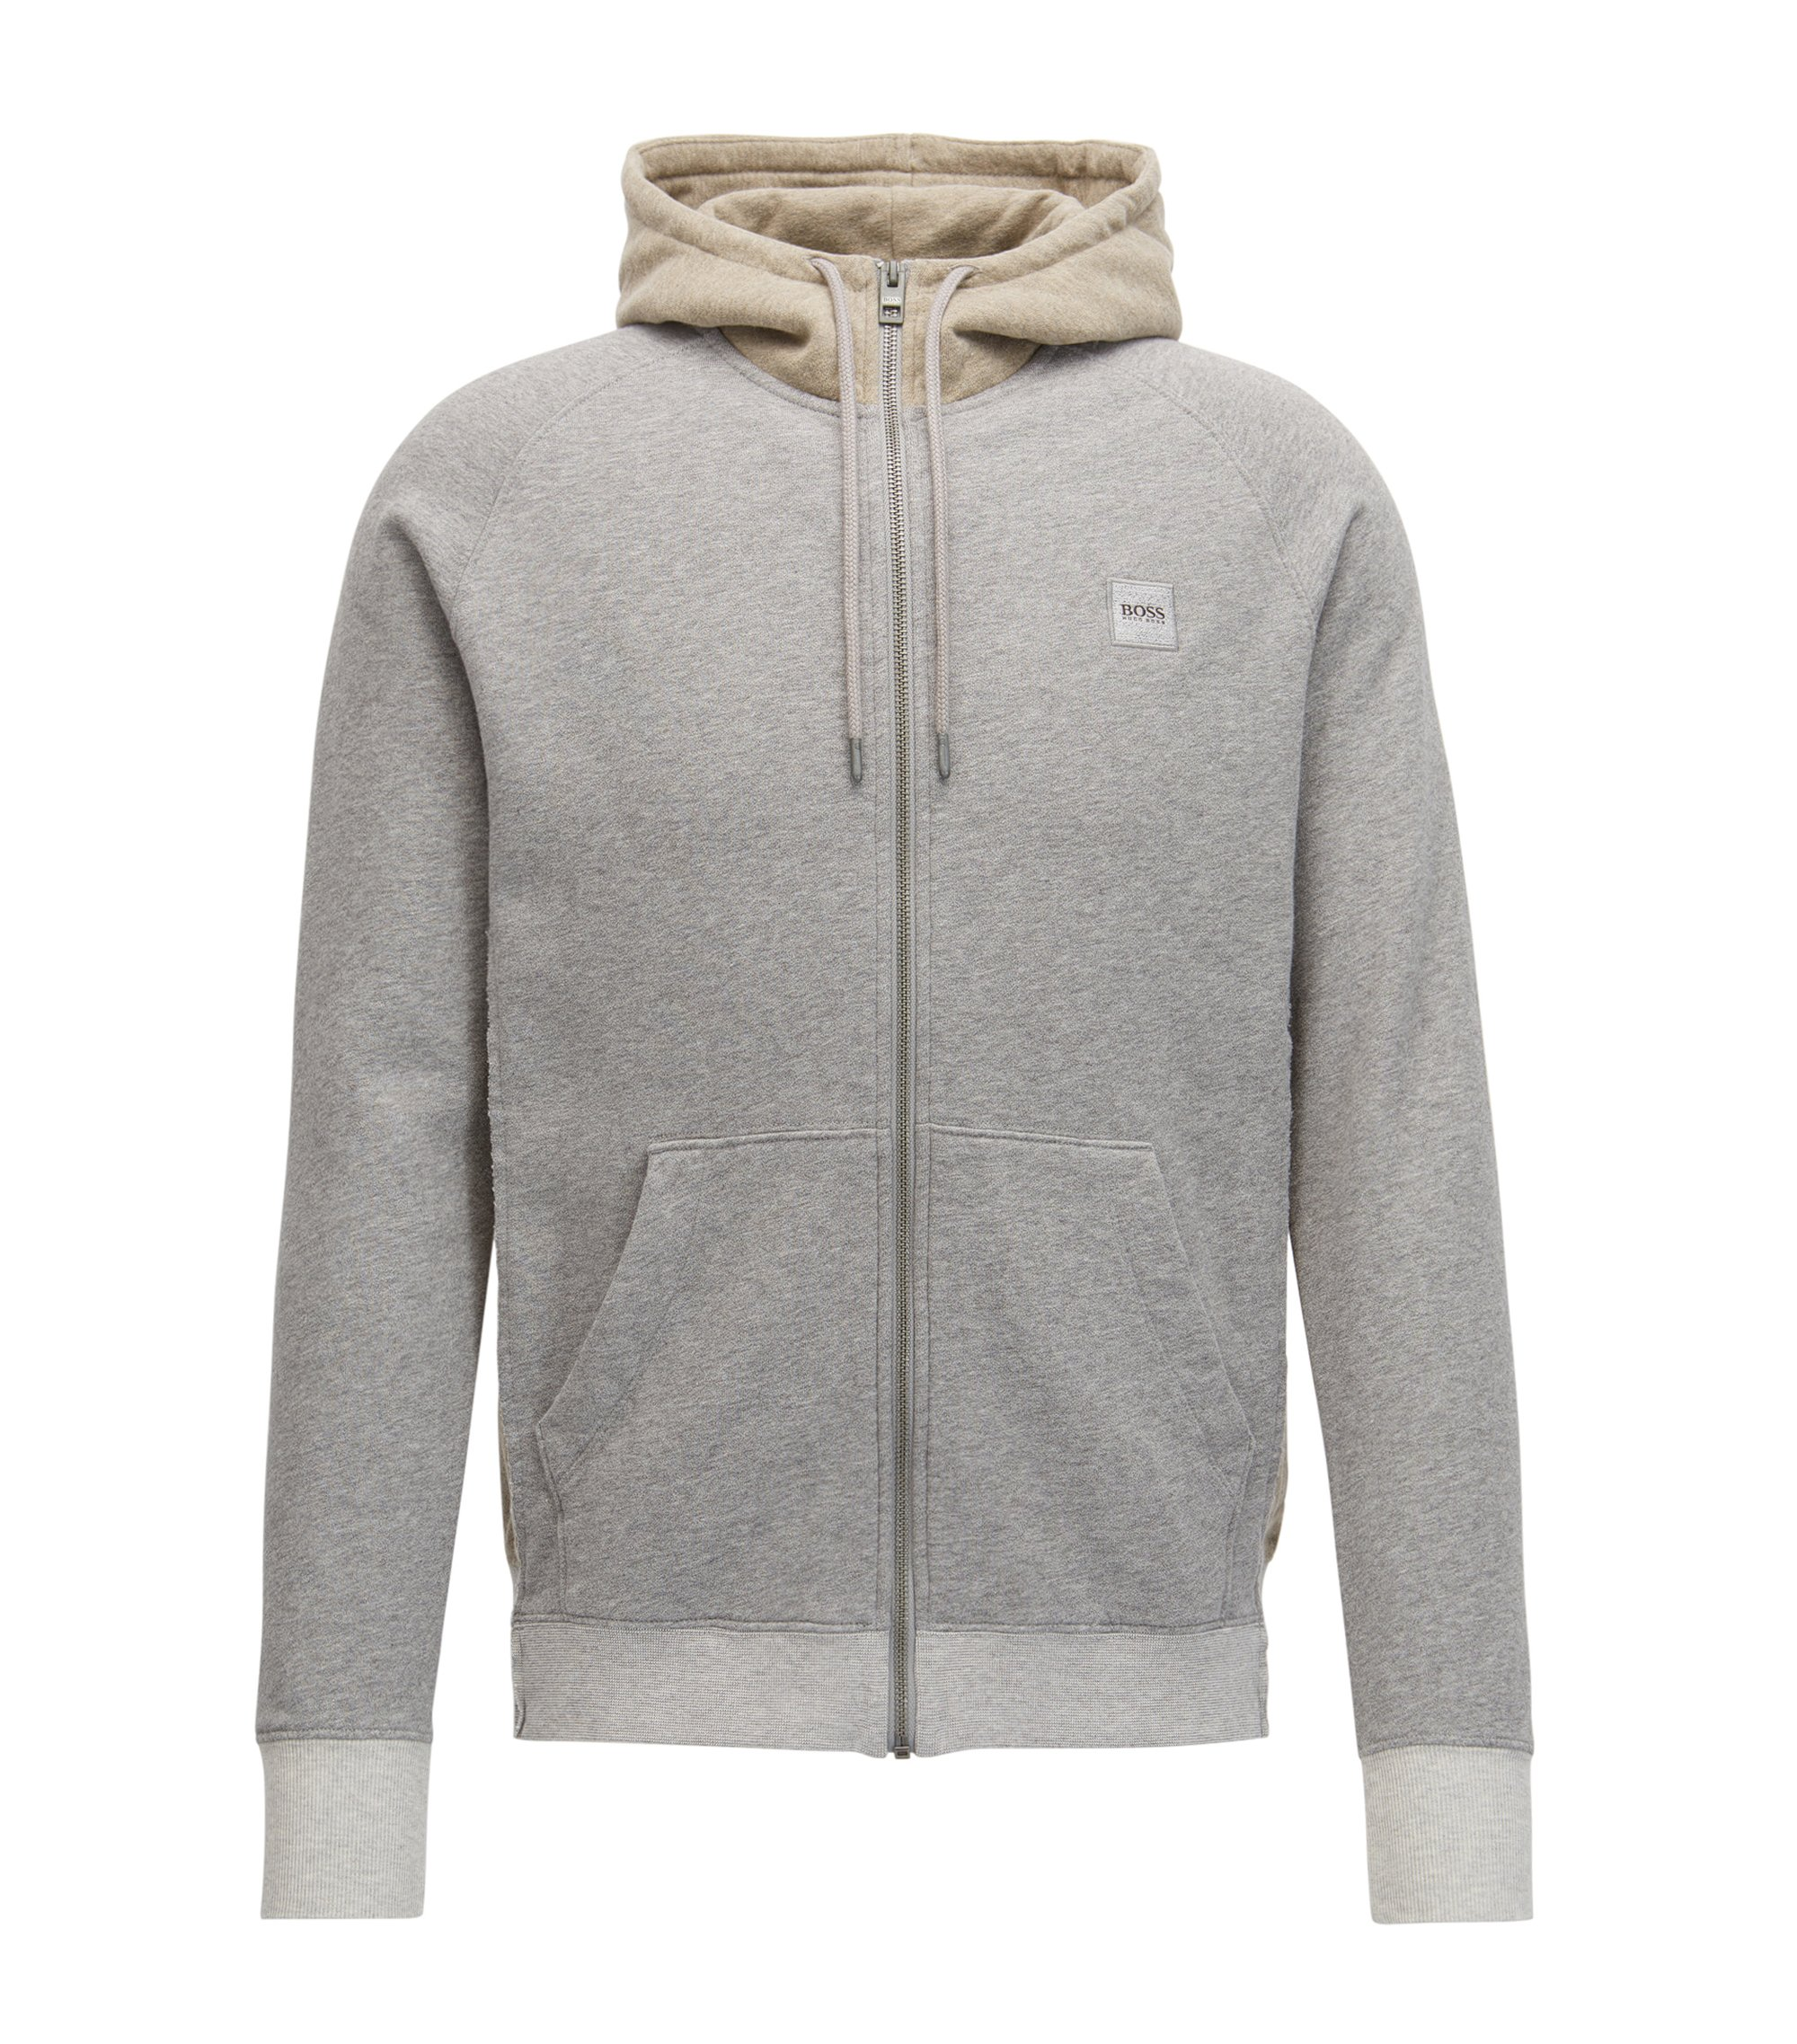 French Terry Full-Zip Hoodie | Zteen, Light Grey